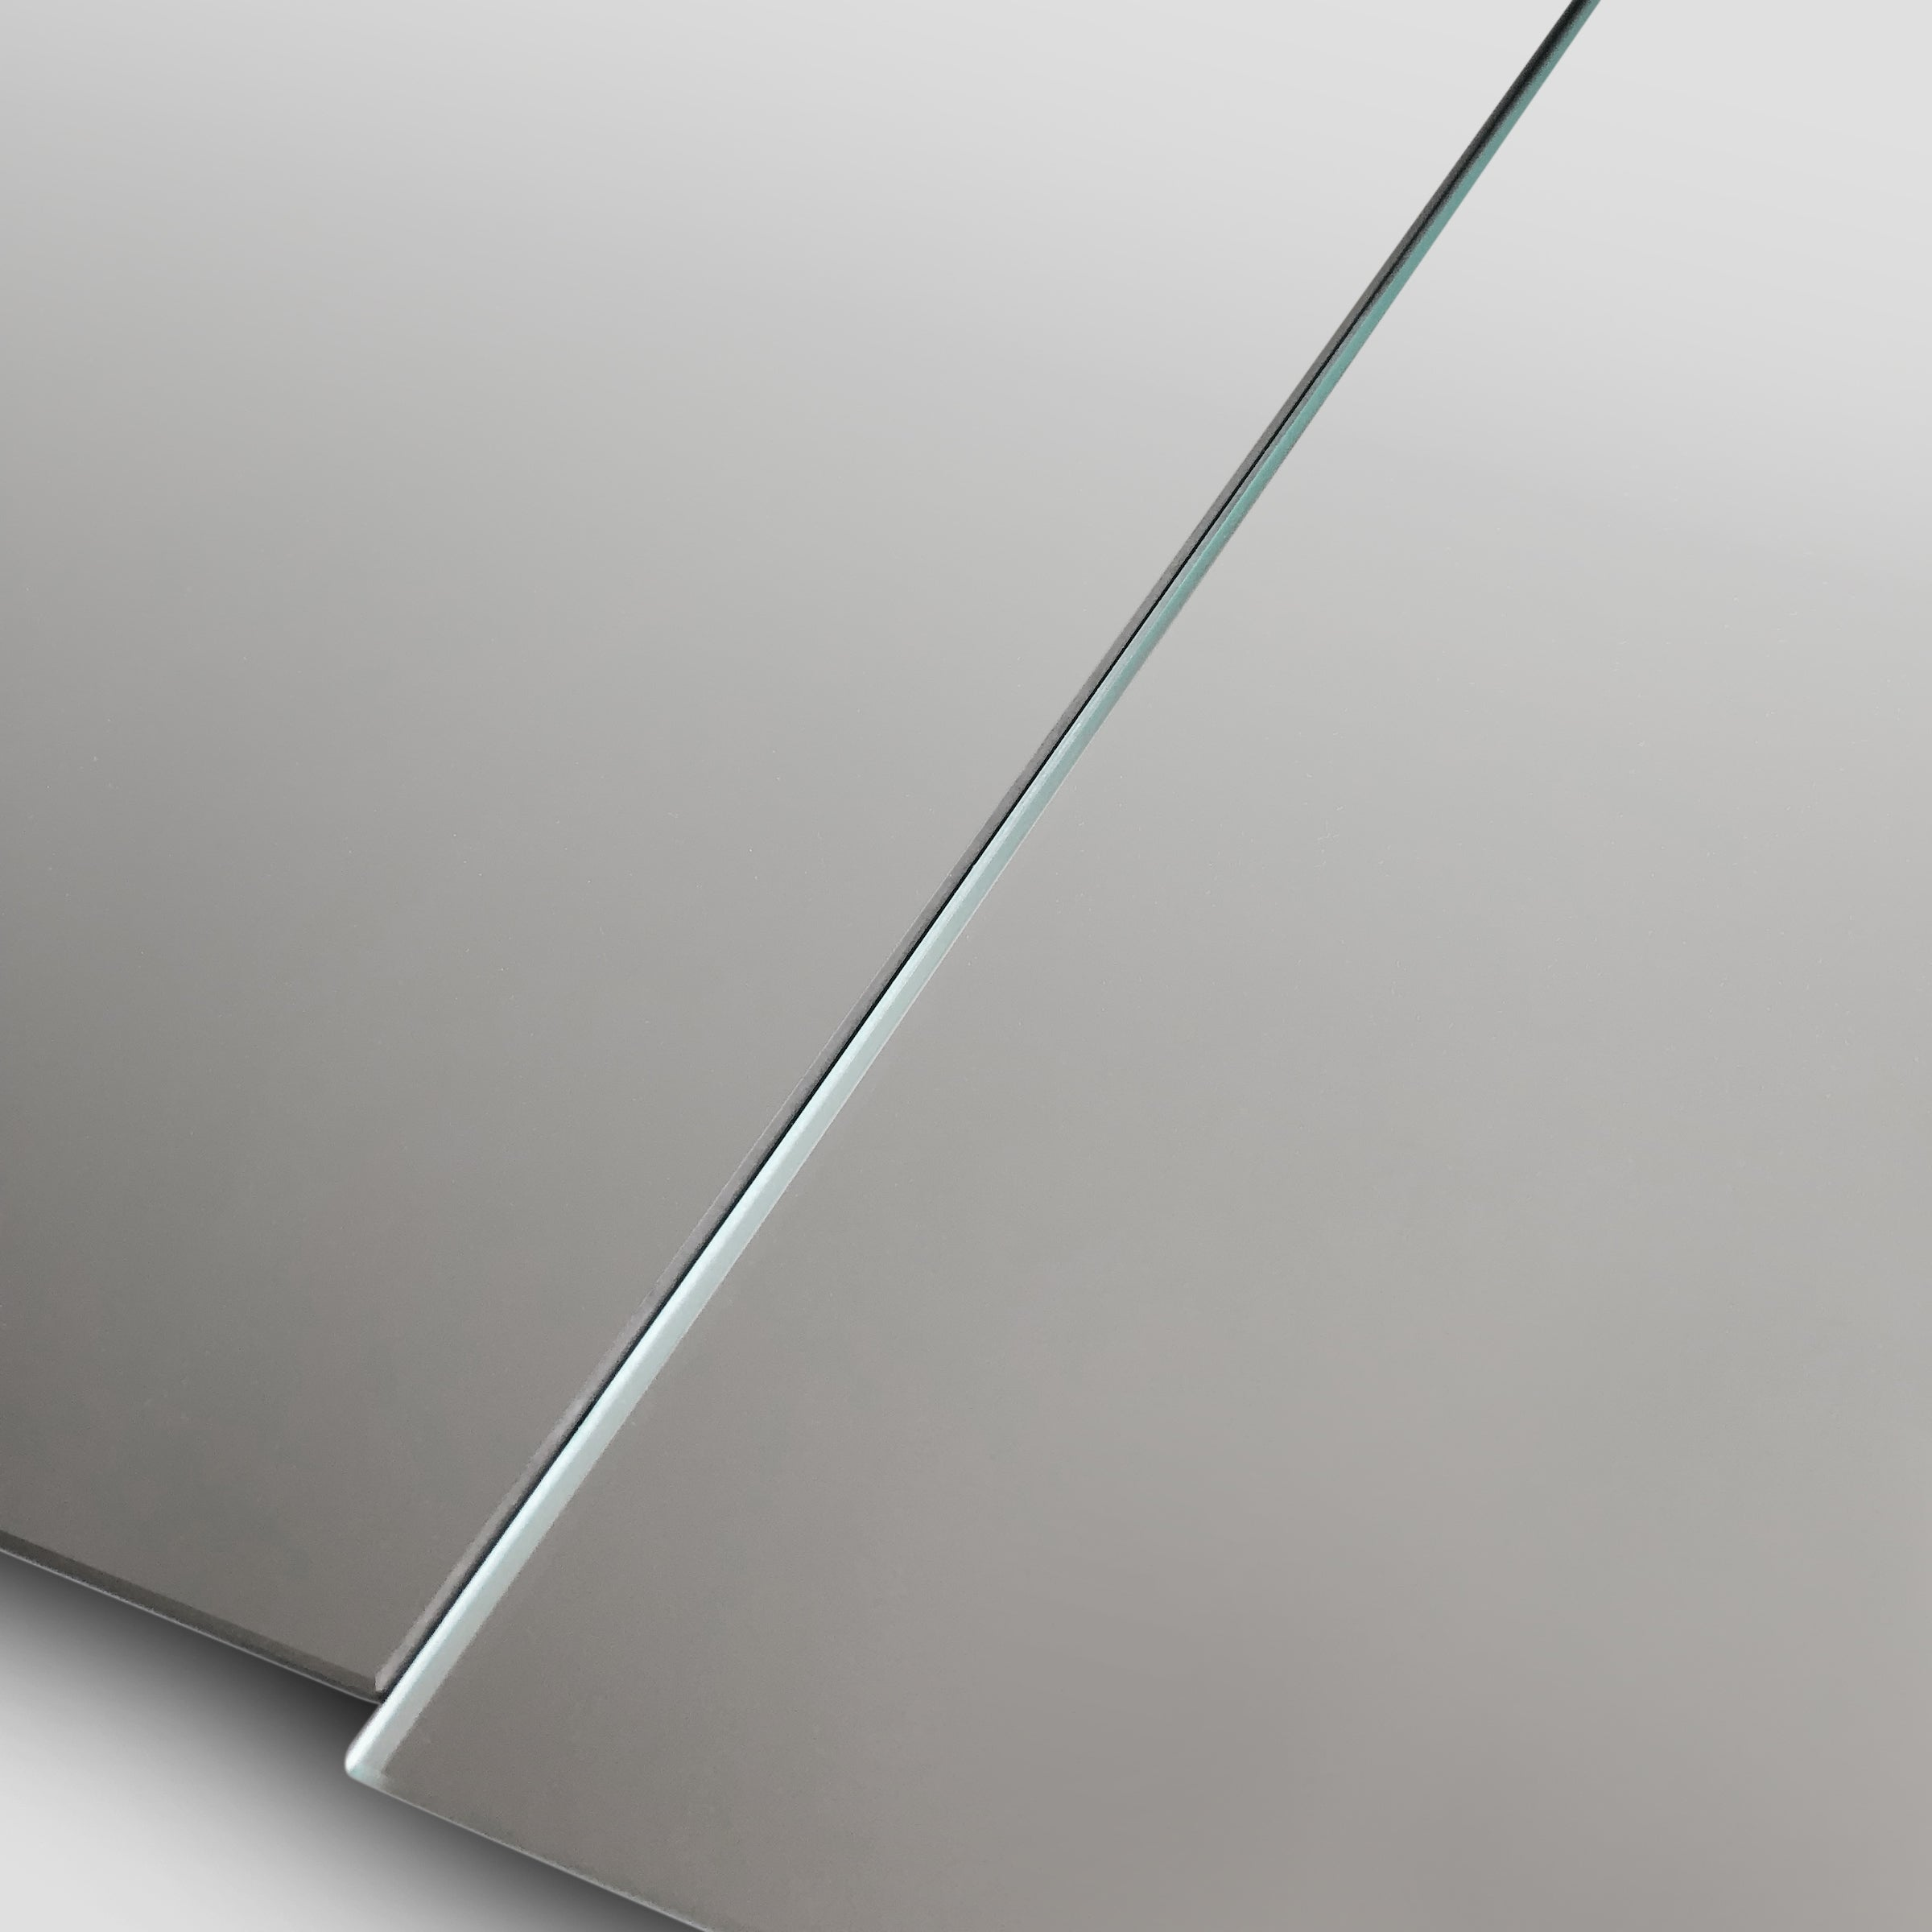 Detail view of the modern minimalist ICEBERG mirror, clear mirror mounted on MDF panel, available in two practical dimensions, easy mounting using a pair of d-hooks, designed and made in Montreal Canada.